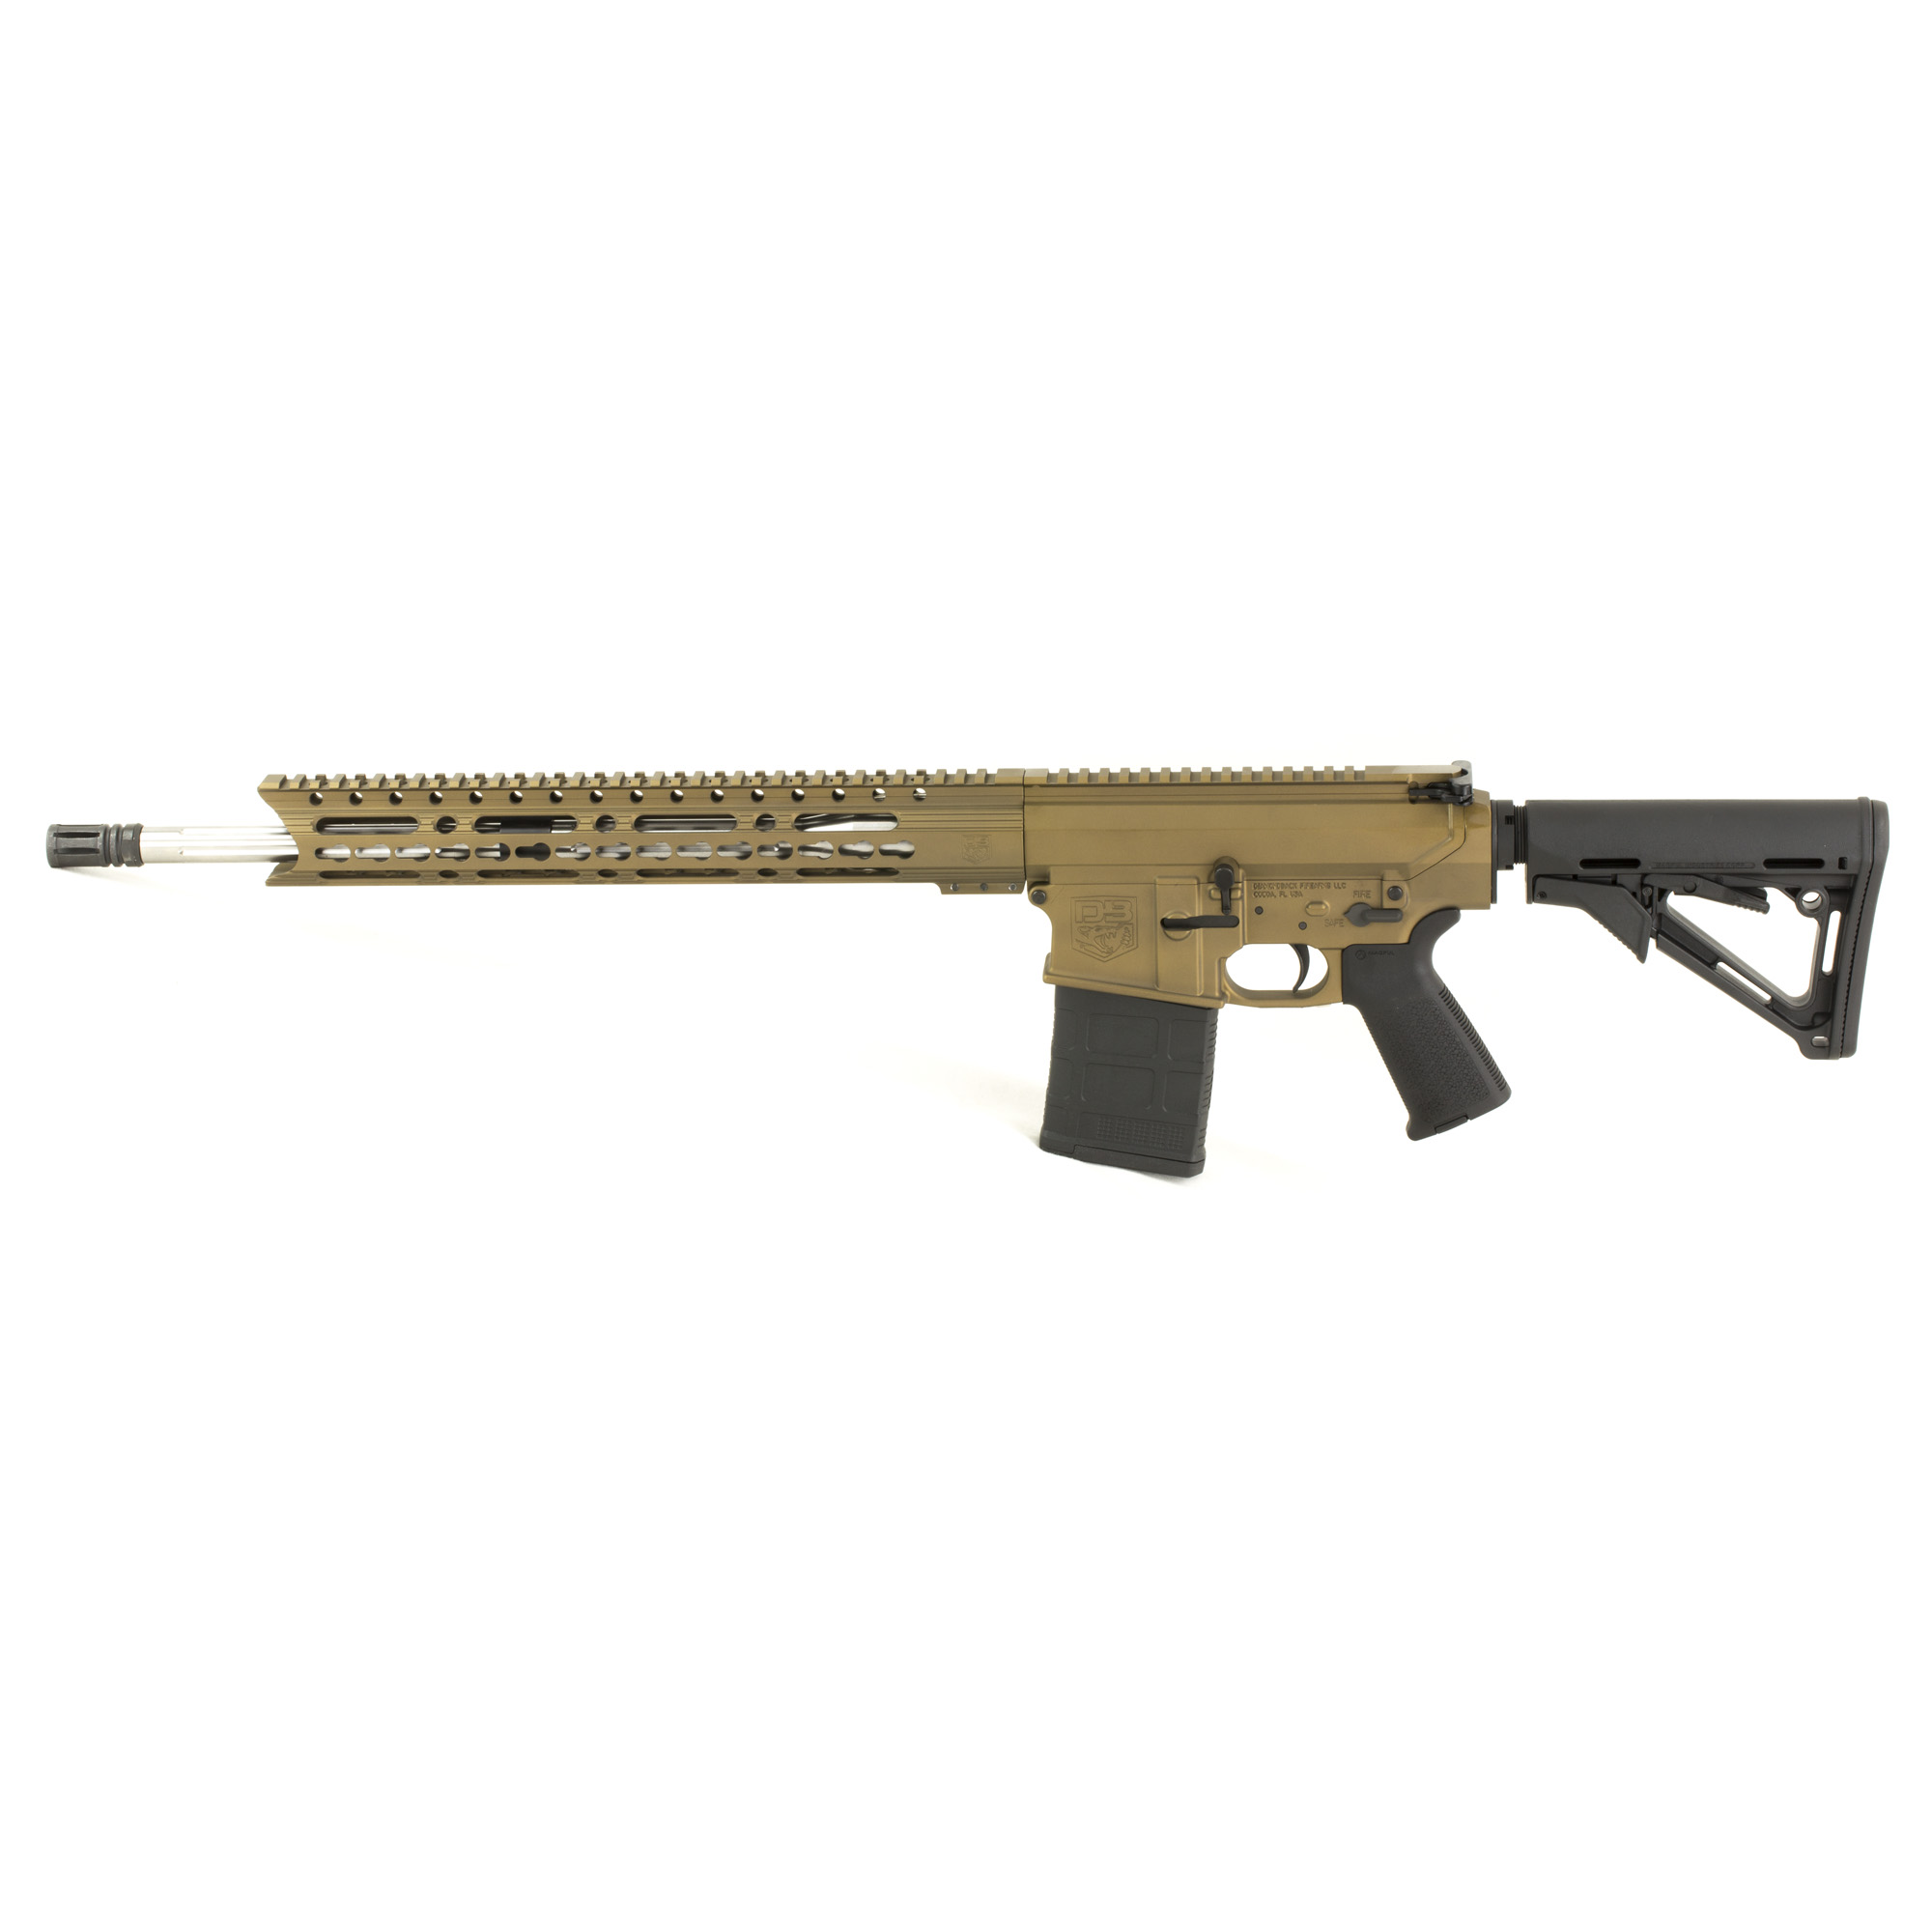 """Diamondback Firearms is proud to announce its line of DB10 rifles made entirely in the USA! Starting with the tried-and-true"""" U.S. Military-proven gas-impingement system and using only the highest quality components machined in Diamondback's CNC facility. The DB10 raises the bar when it comes to features and performance when compared to others. The Diamondback DB10 represents value and versatility at a very affordable price."""